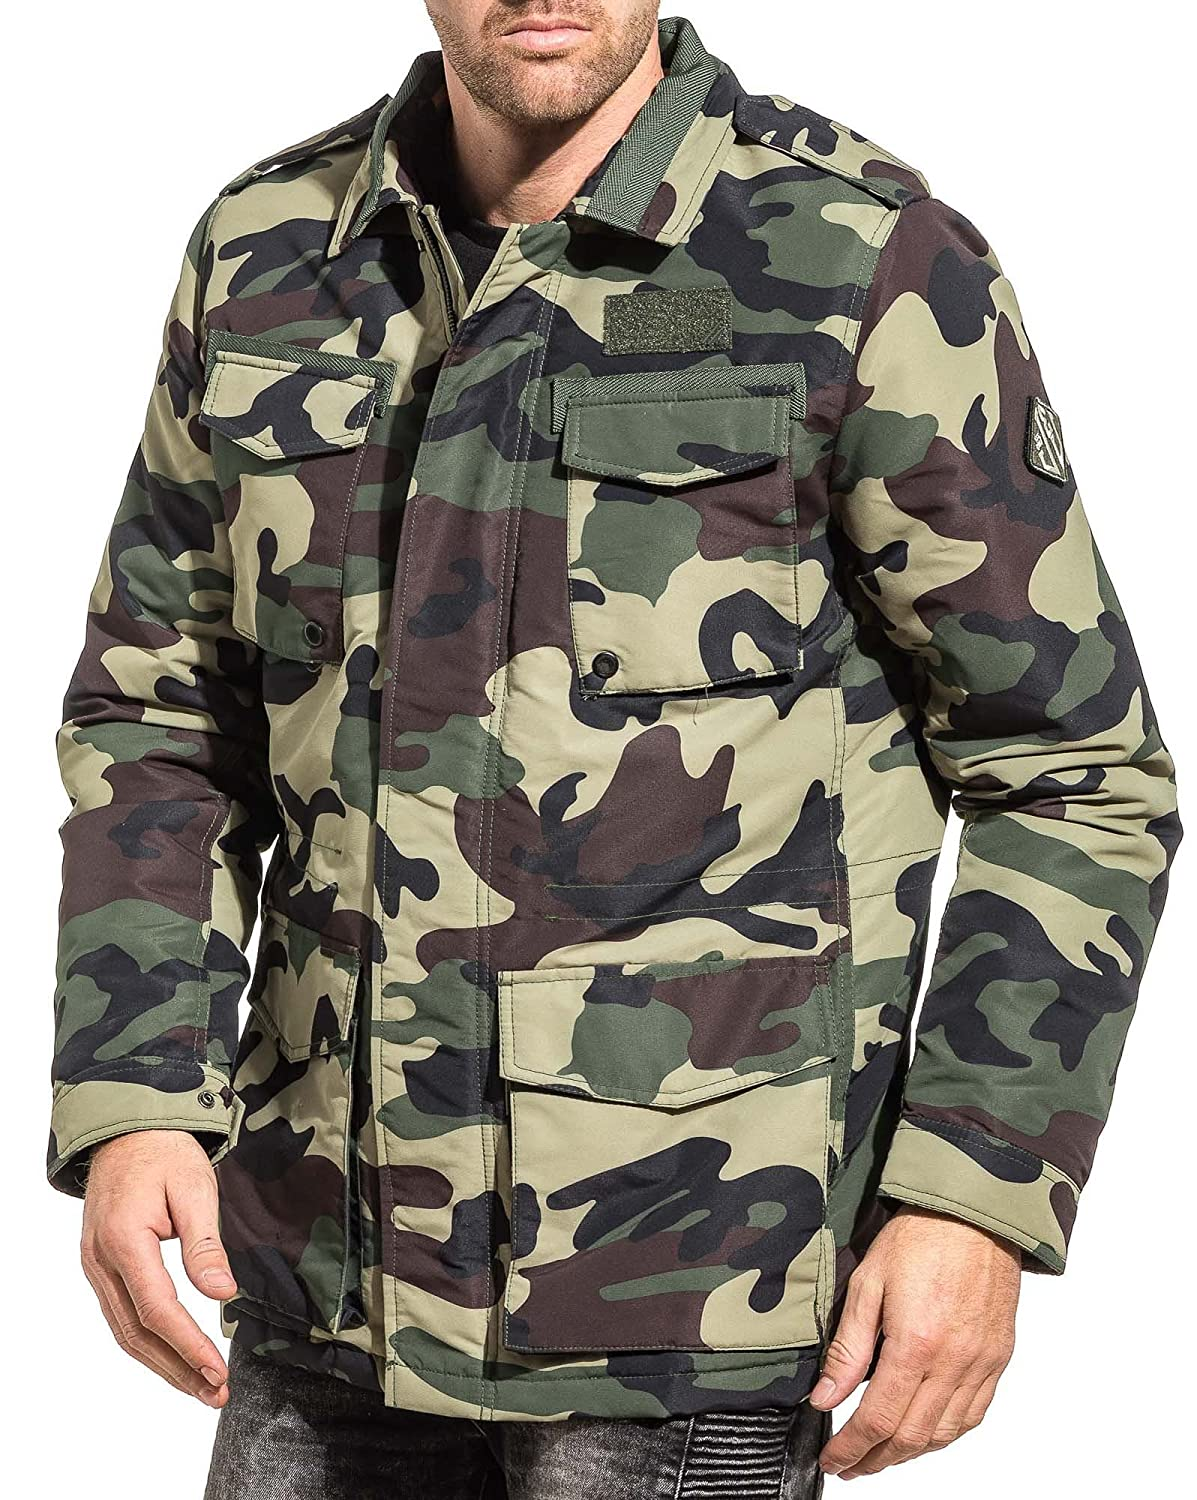 Jack CouleurVert And Camouflage Veste Jones Kaki Army Homme D2HEYW9I